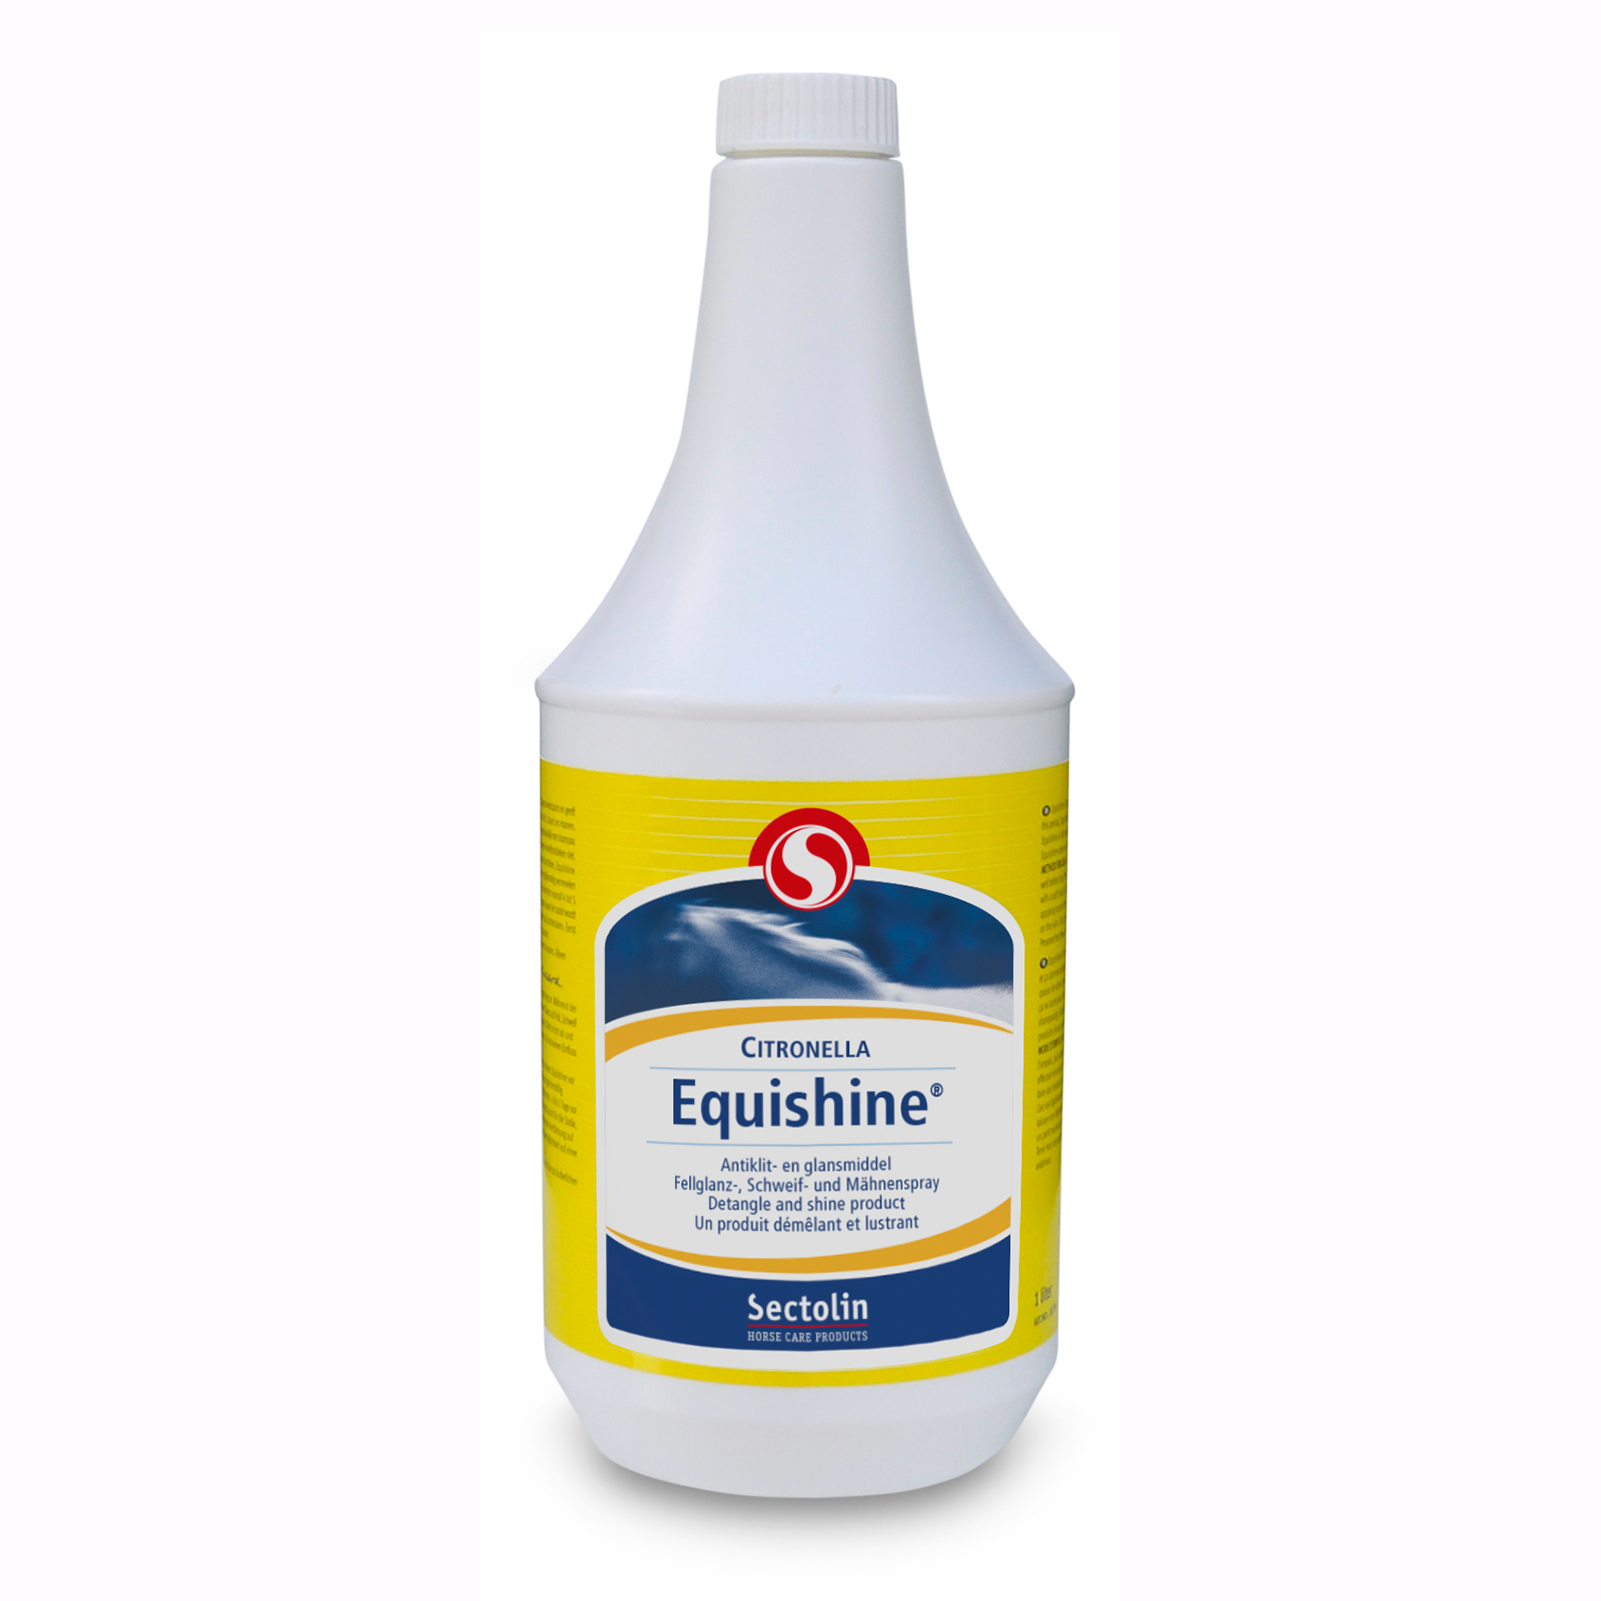 Sectolin EquiShine Citronella 1000 ml